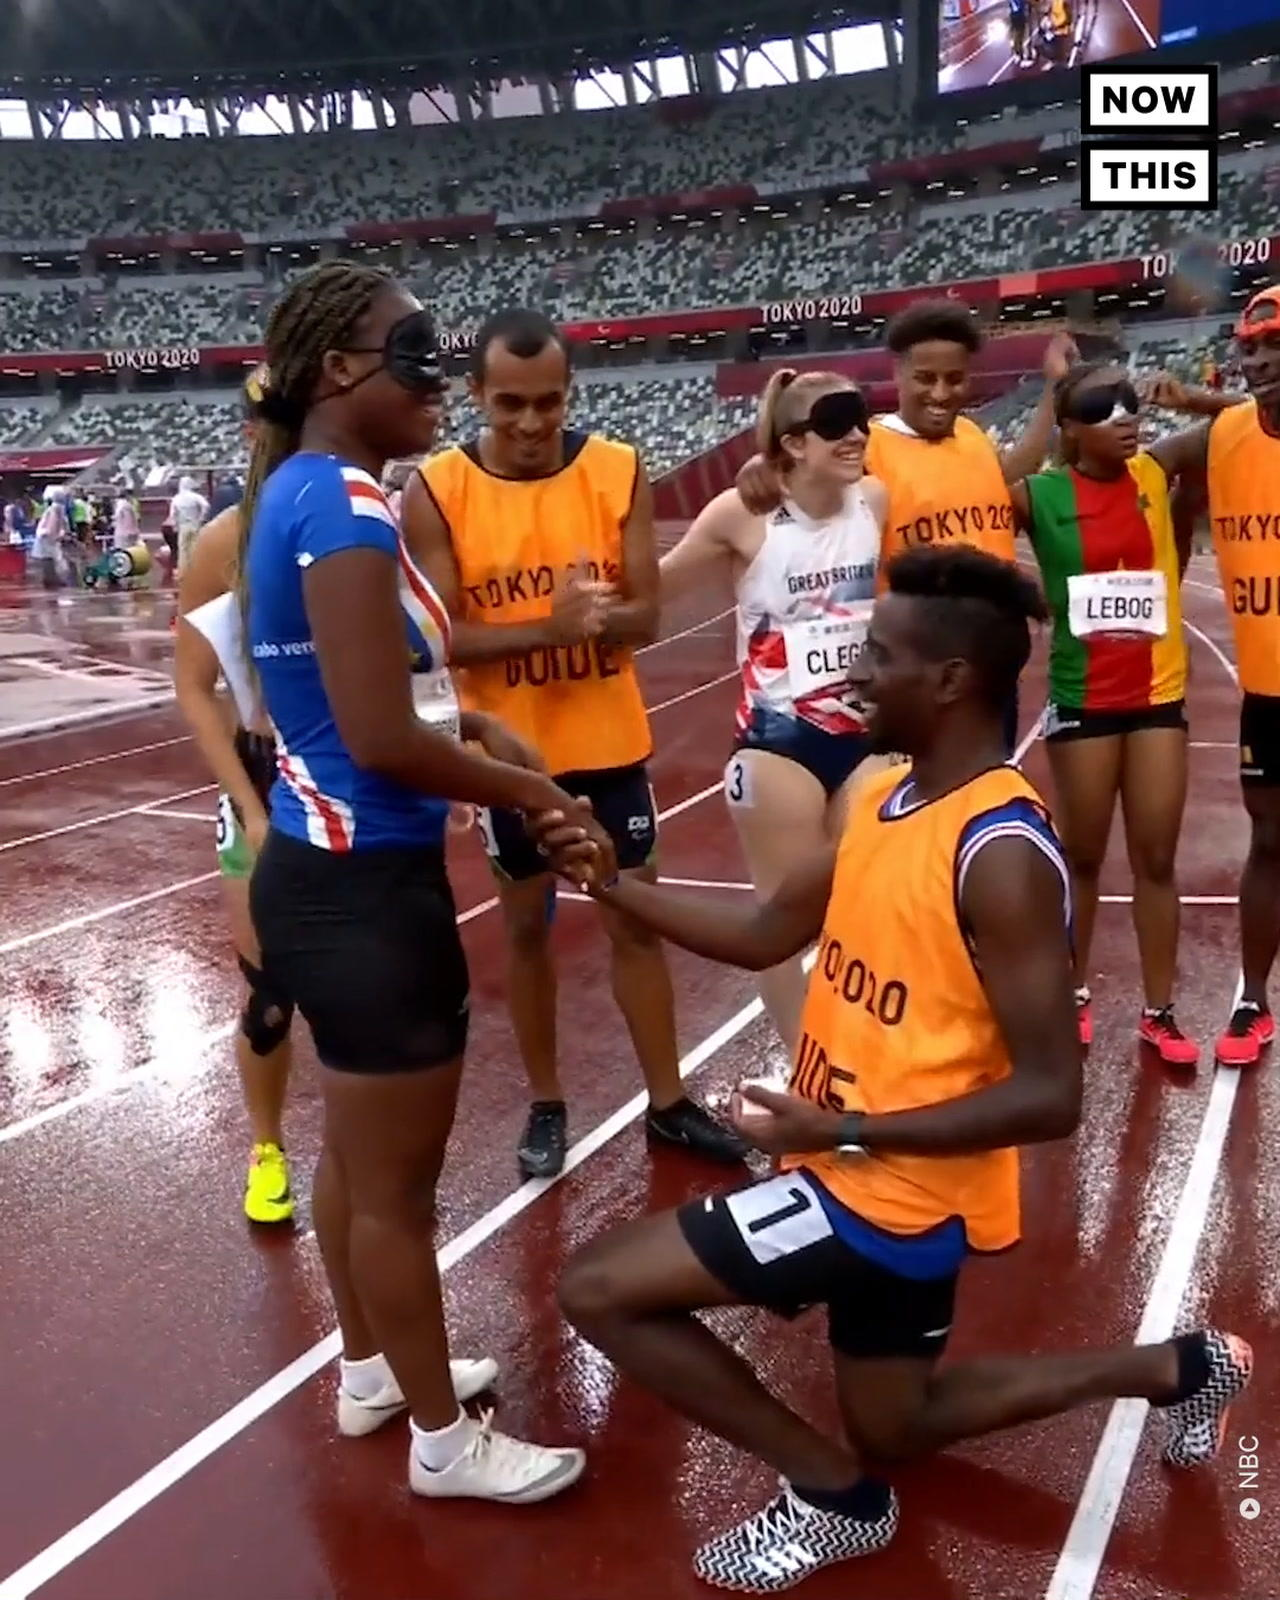 Guide Proposes to Paralympic Runner at Finish Line of Race